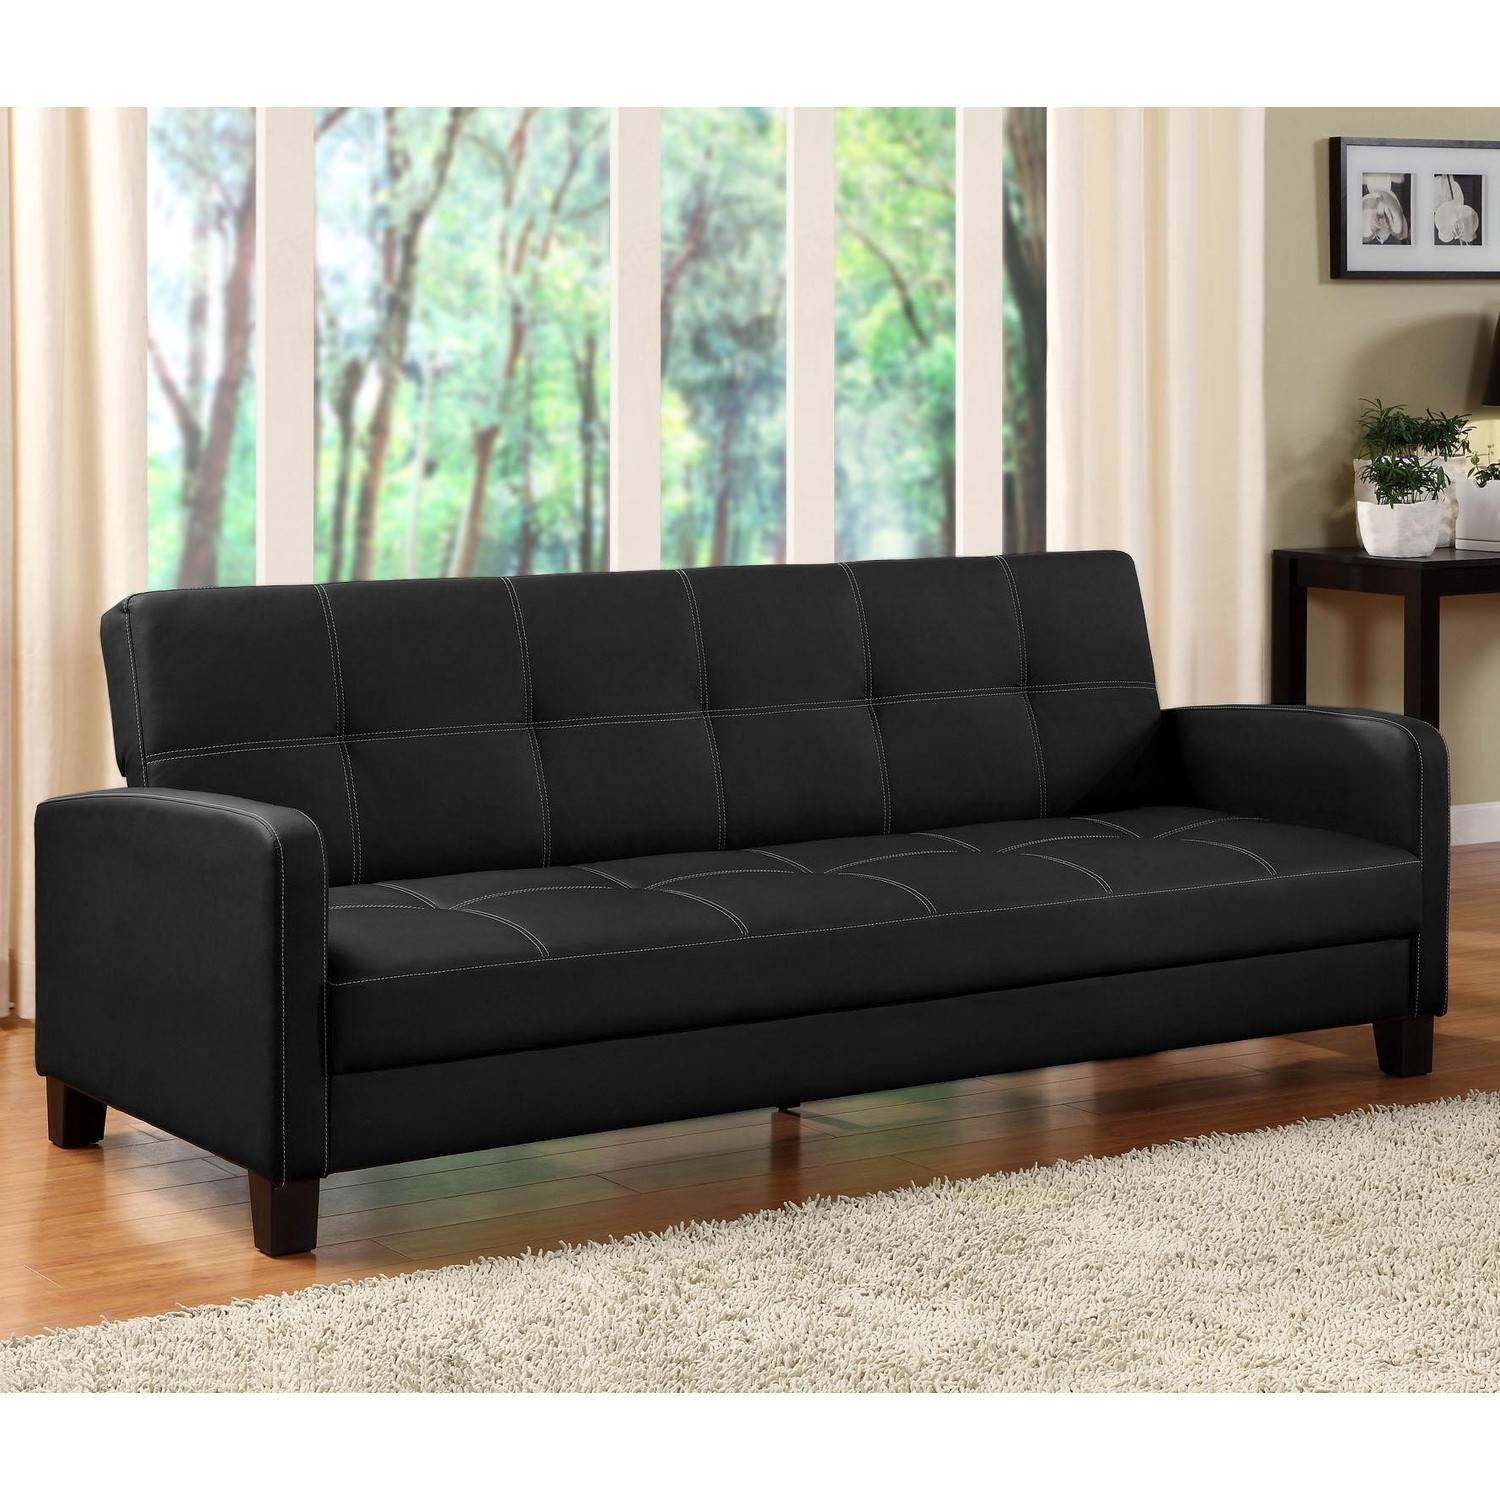 Mainstays Contempo Futon Sofa Bed Assembly Ins #5566 regarding Mainstays Contempo Futon Sofa Beds (Image 10 of 15)